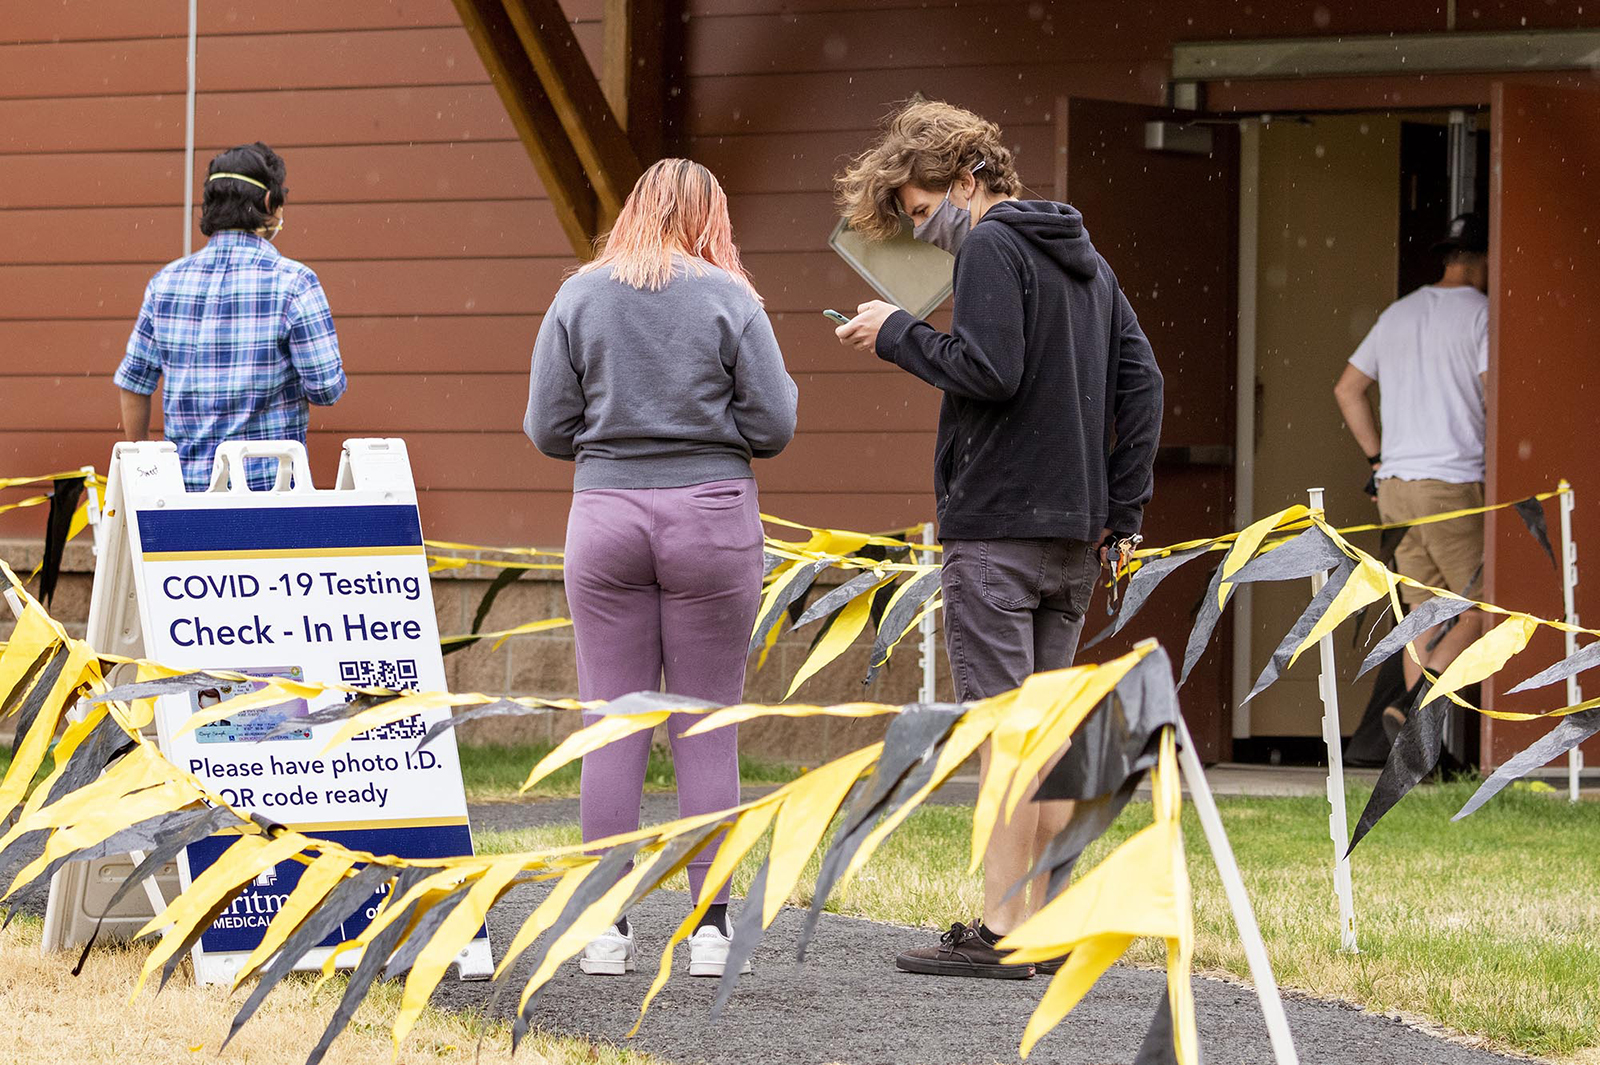 University of Idaho students line up for a Covid-19 test on Wednesday, August 13, outside the Student Recreation Center in Moscow, Idaho.